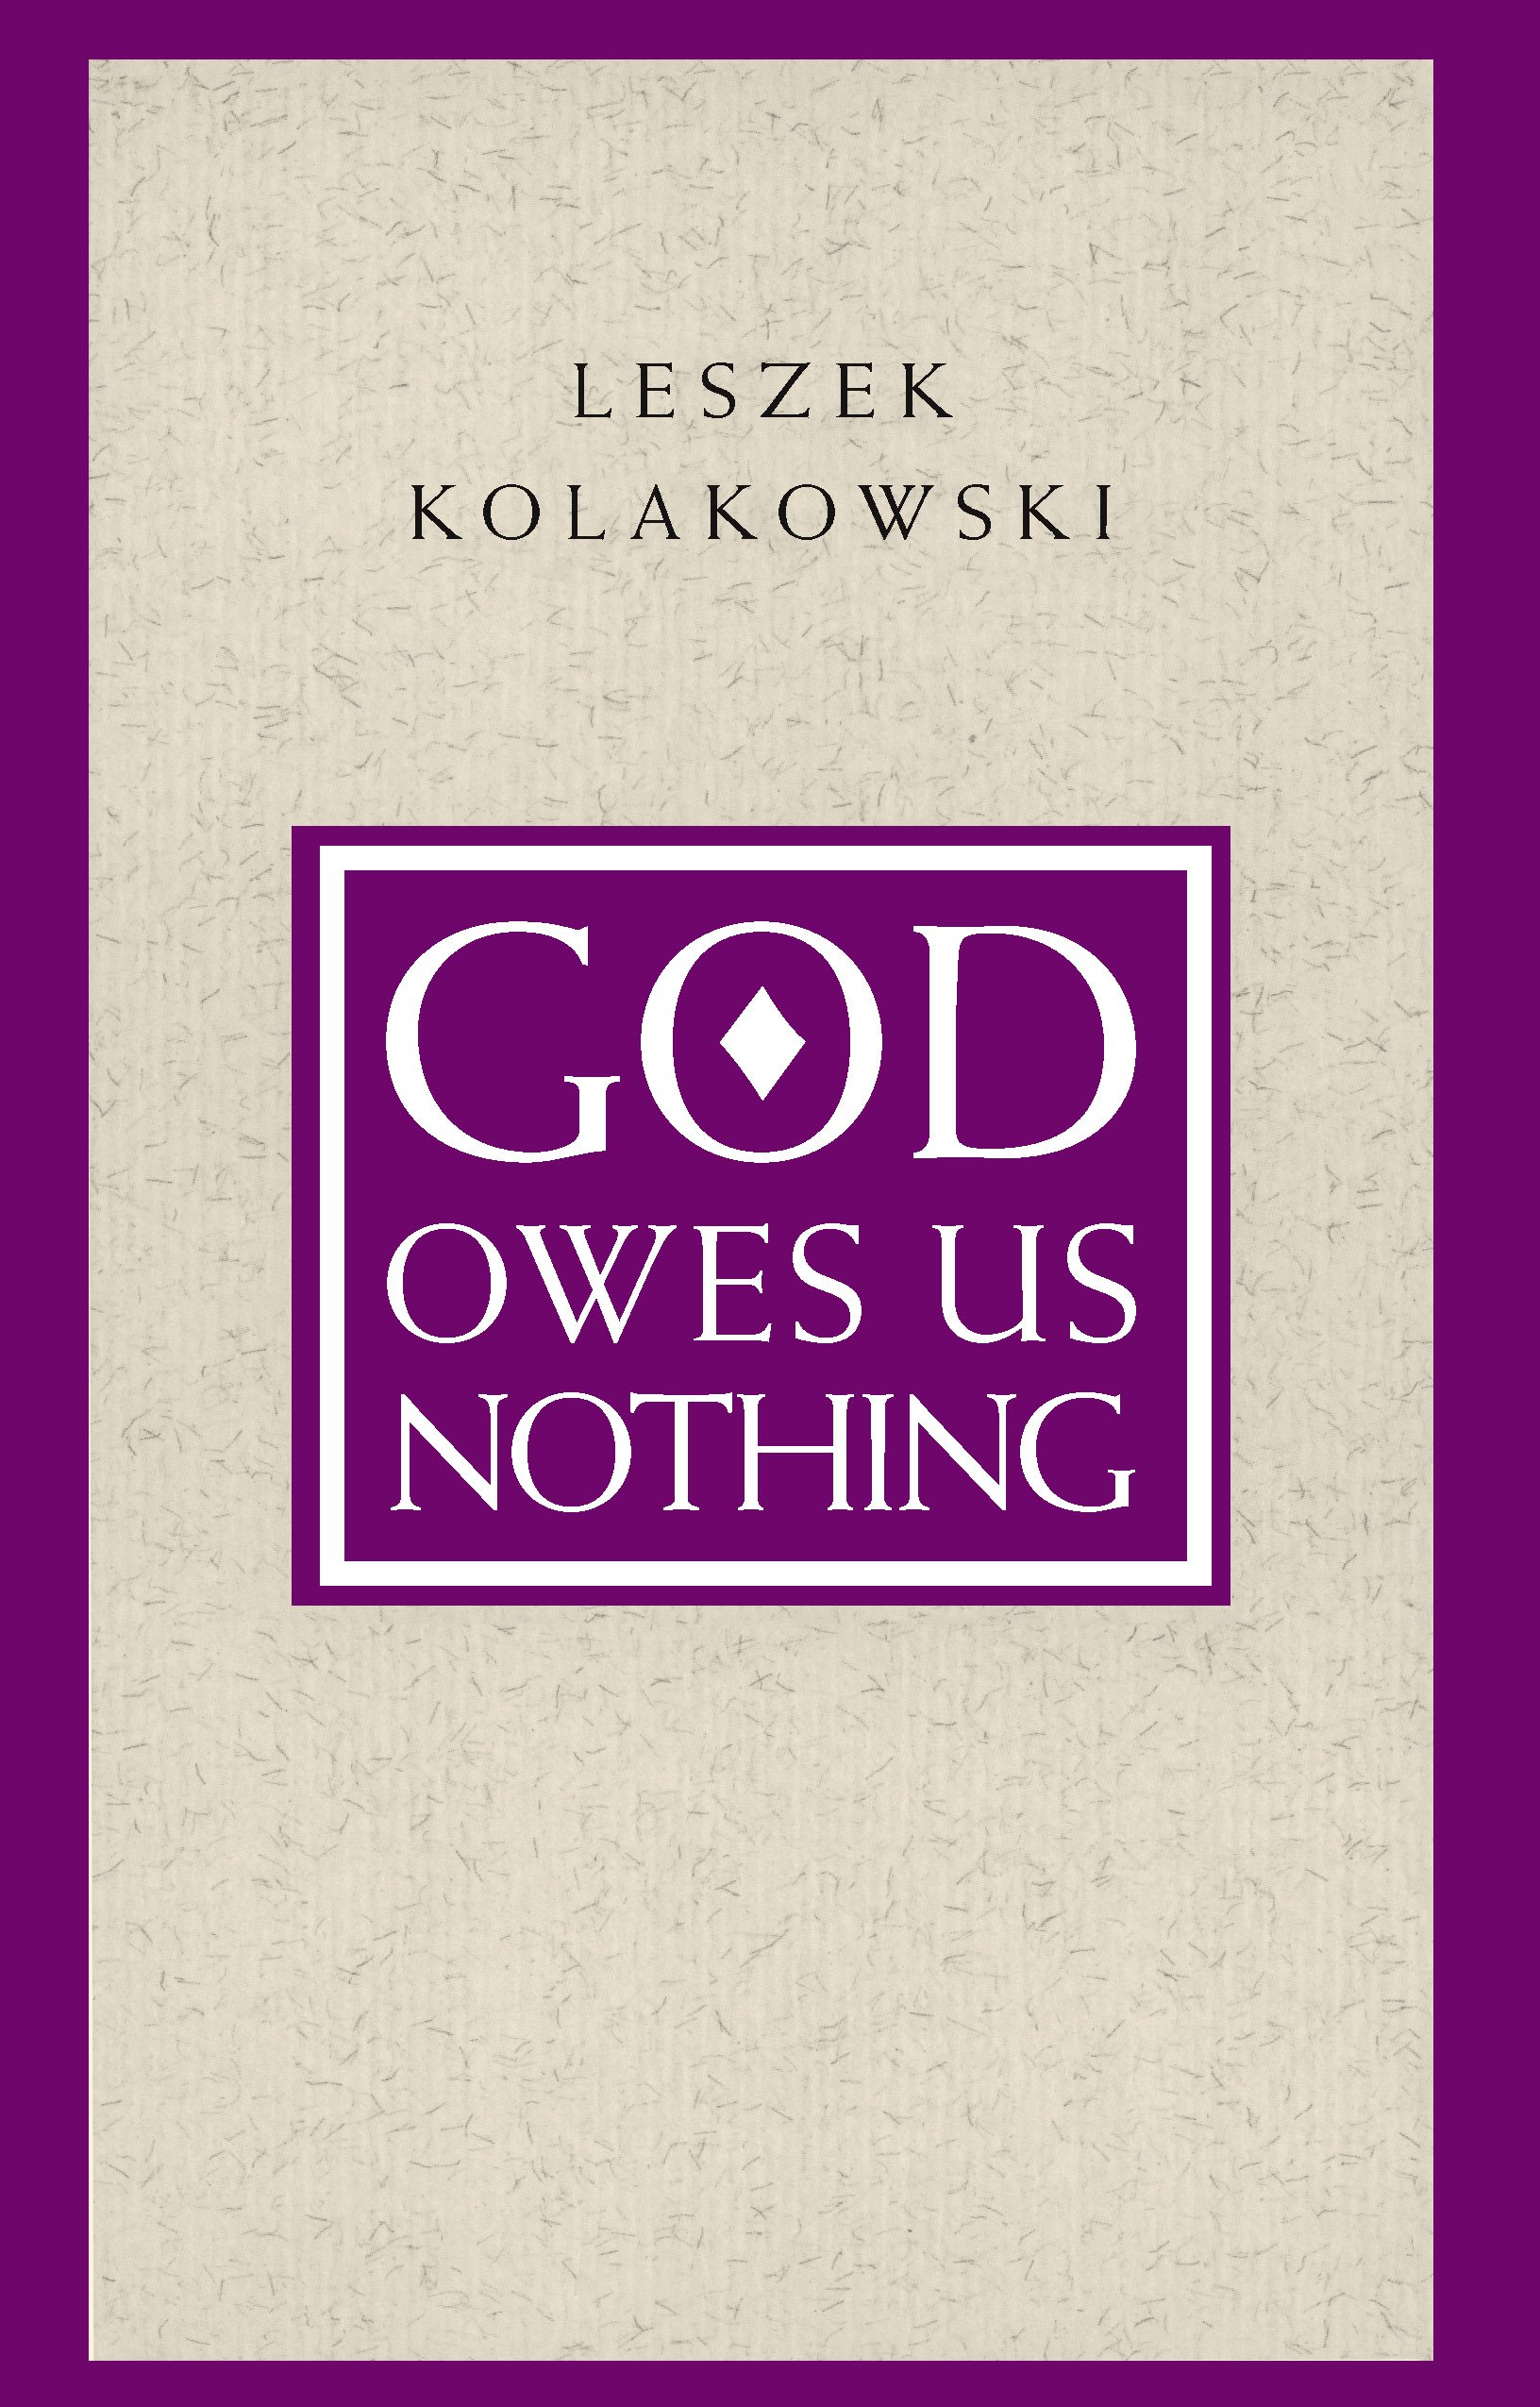 God Owes Us Nothing  A Brief Remark On Pascal's Religion And On The Spirit Of Jansenism  English Edition